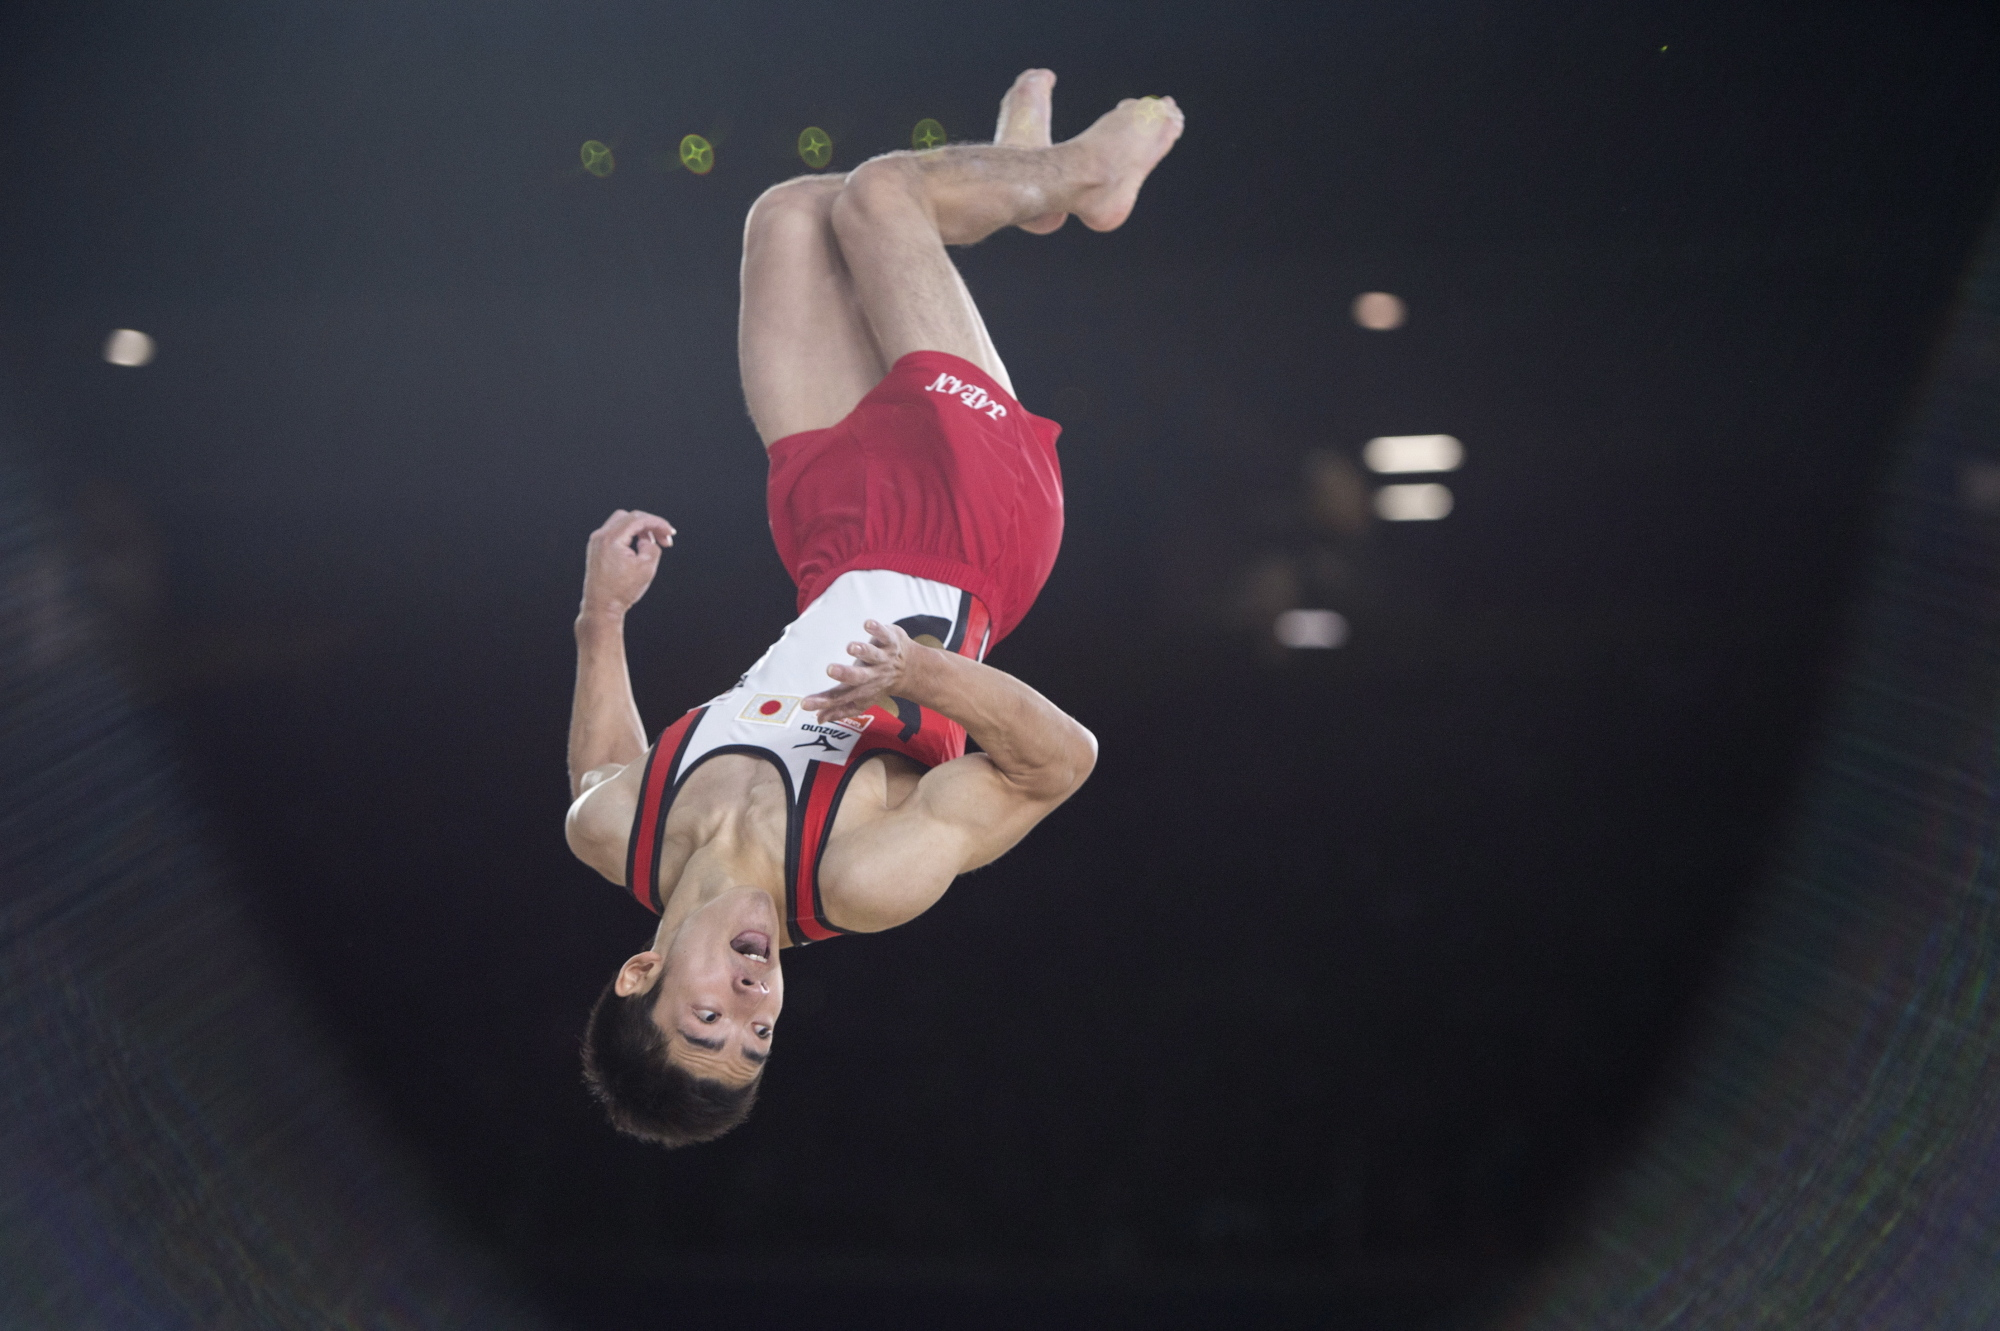 Kenzo Shirai flips during his floor exercise at the artistic world gymnastics championships in Montreal on Saturday. | AP